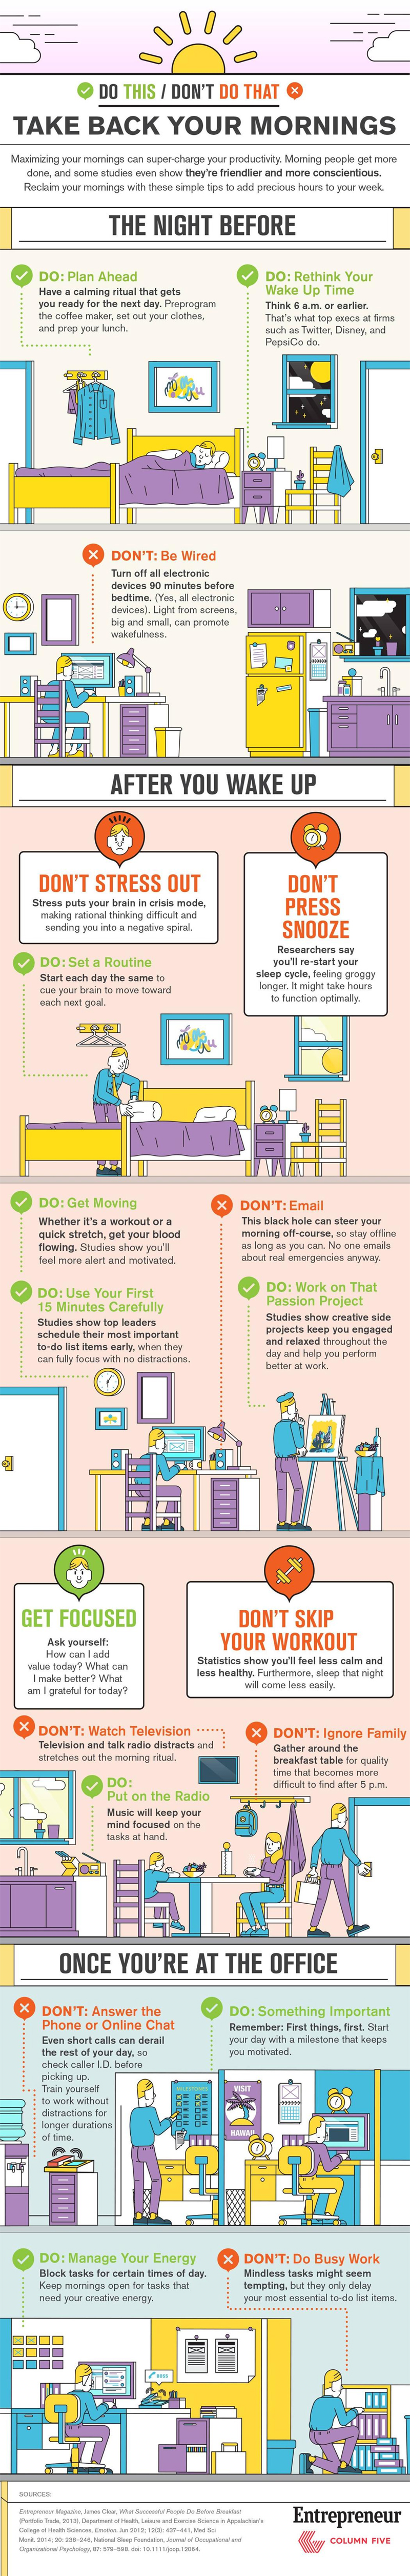 Take Back Your Mornings Infographic